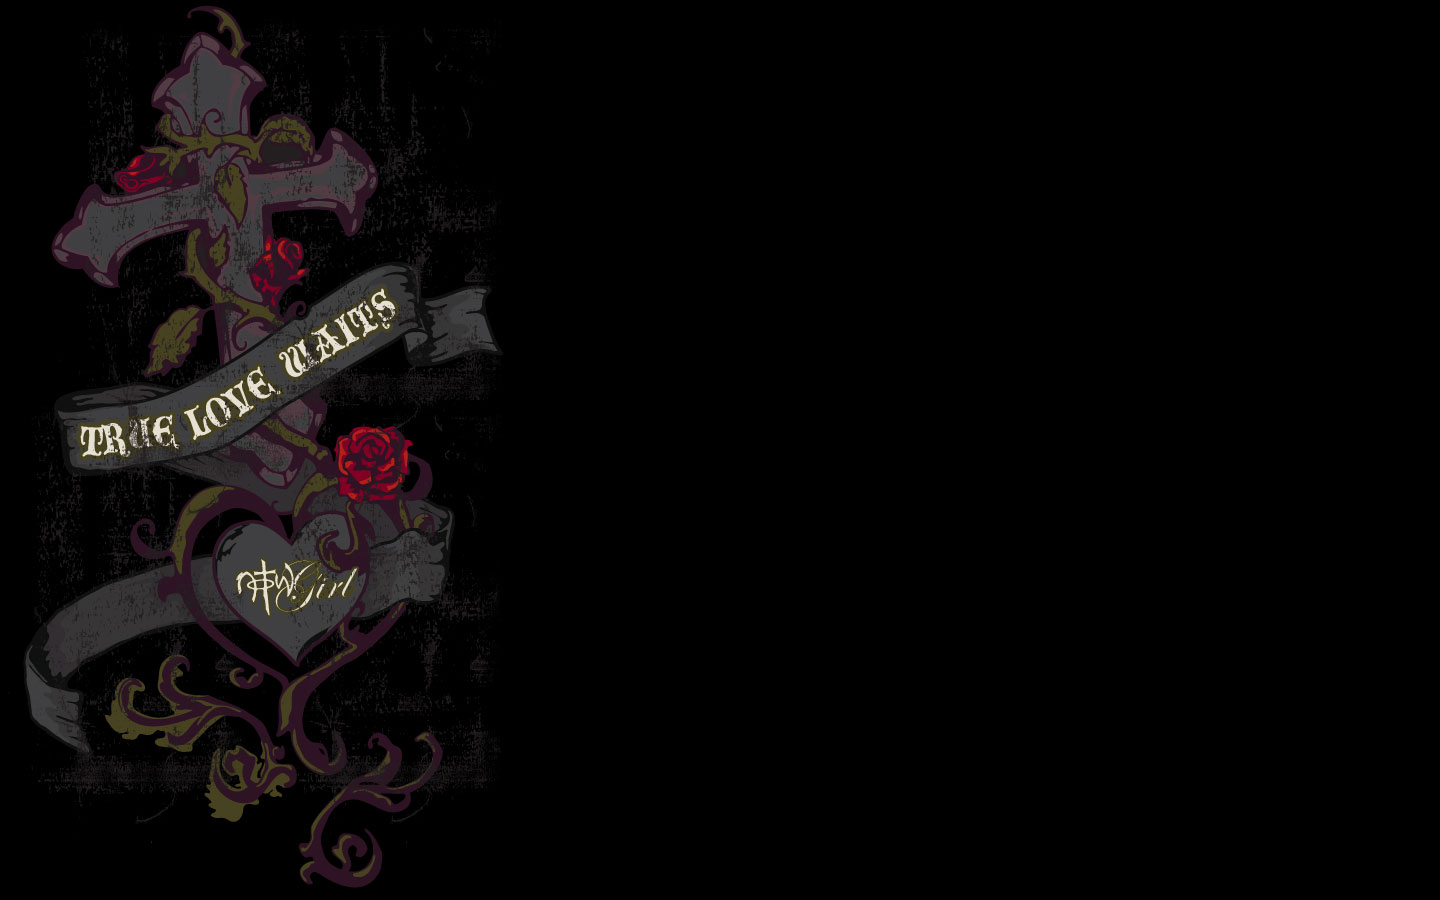 Love Wallpaper With Black Background : True Love Waits Wallpaper - christian Wallpapers and Backgrounds